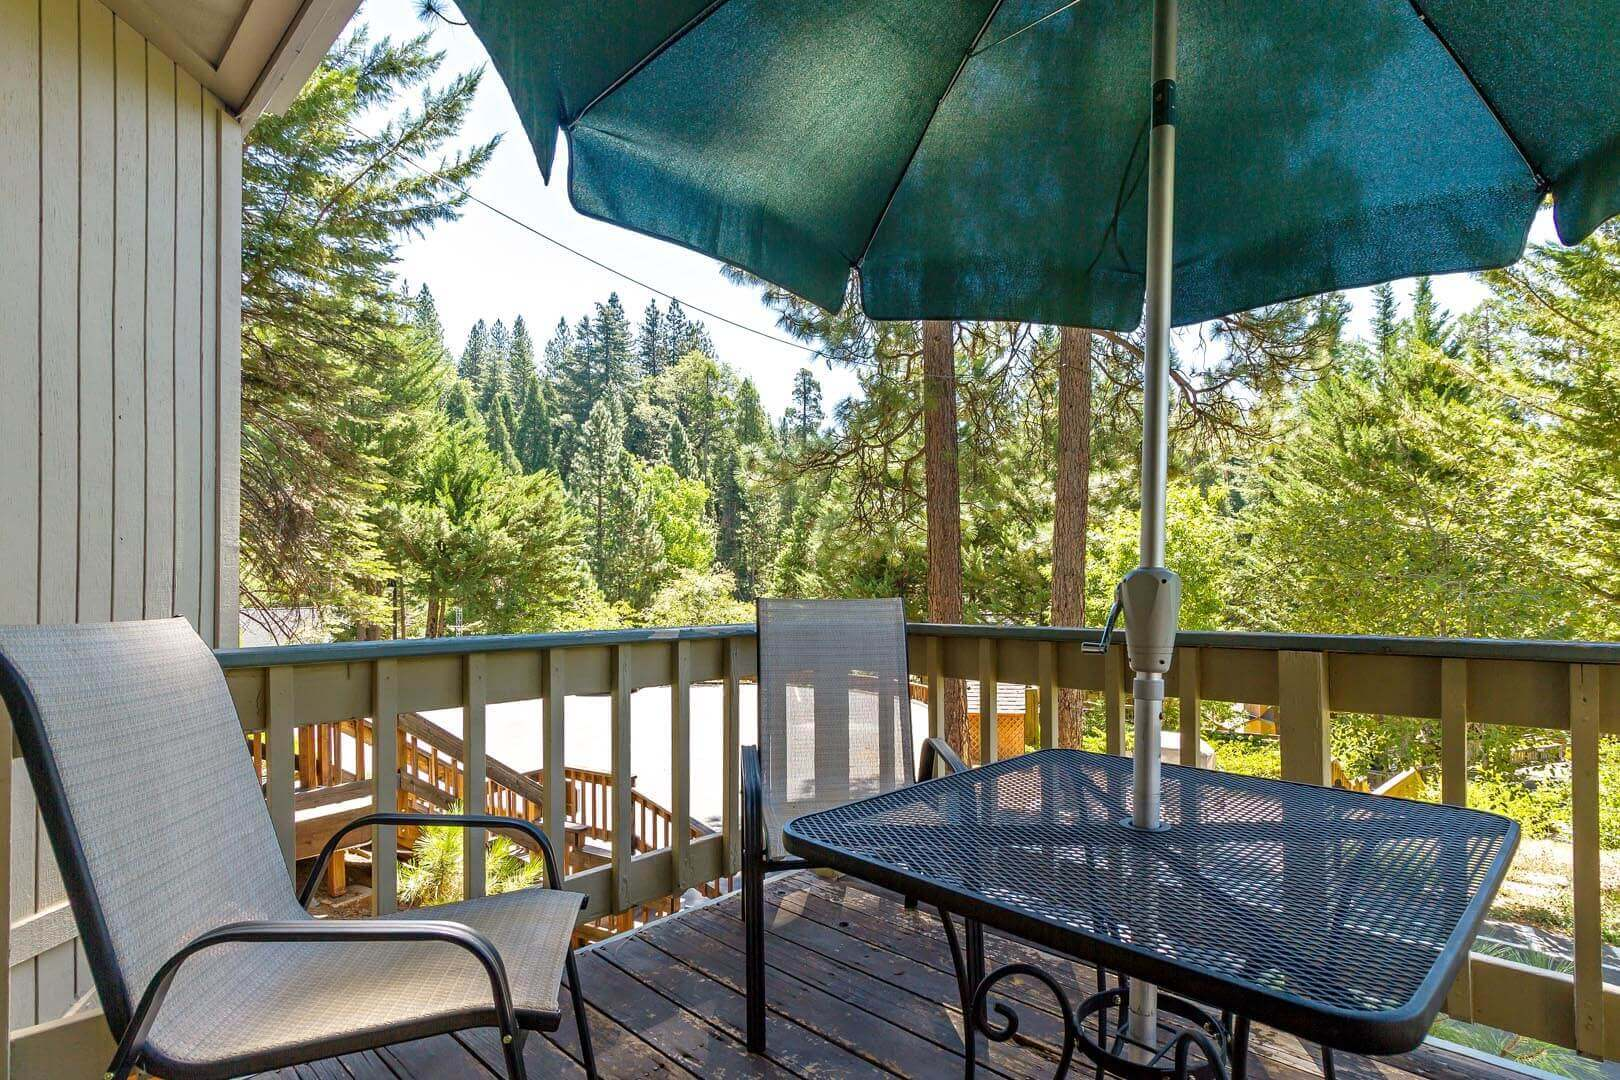 A two bedroom loft view at VRI's Mountain Retreat Resort in California.